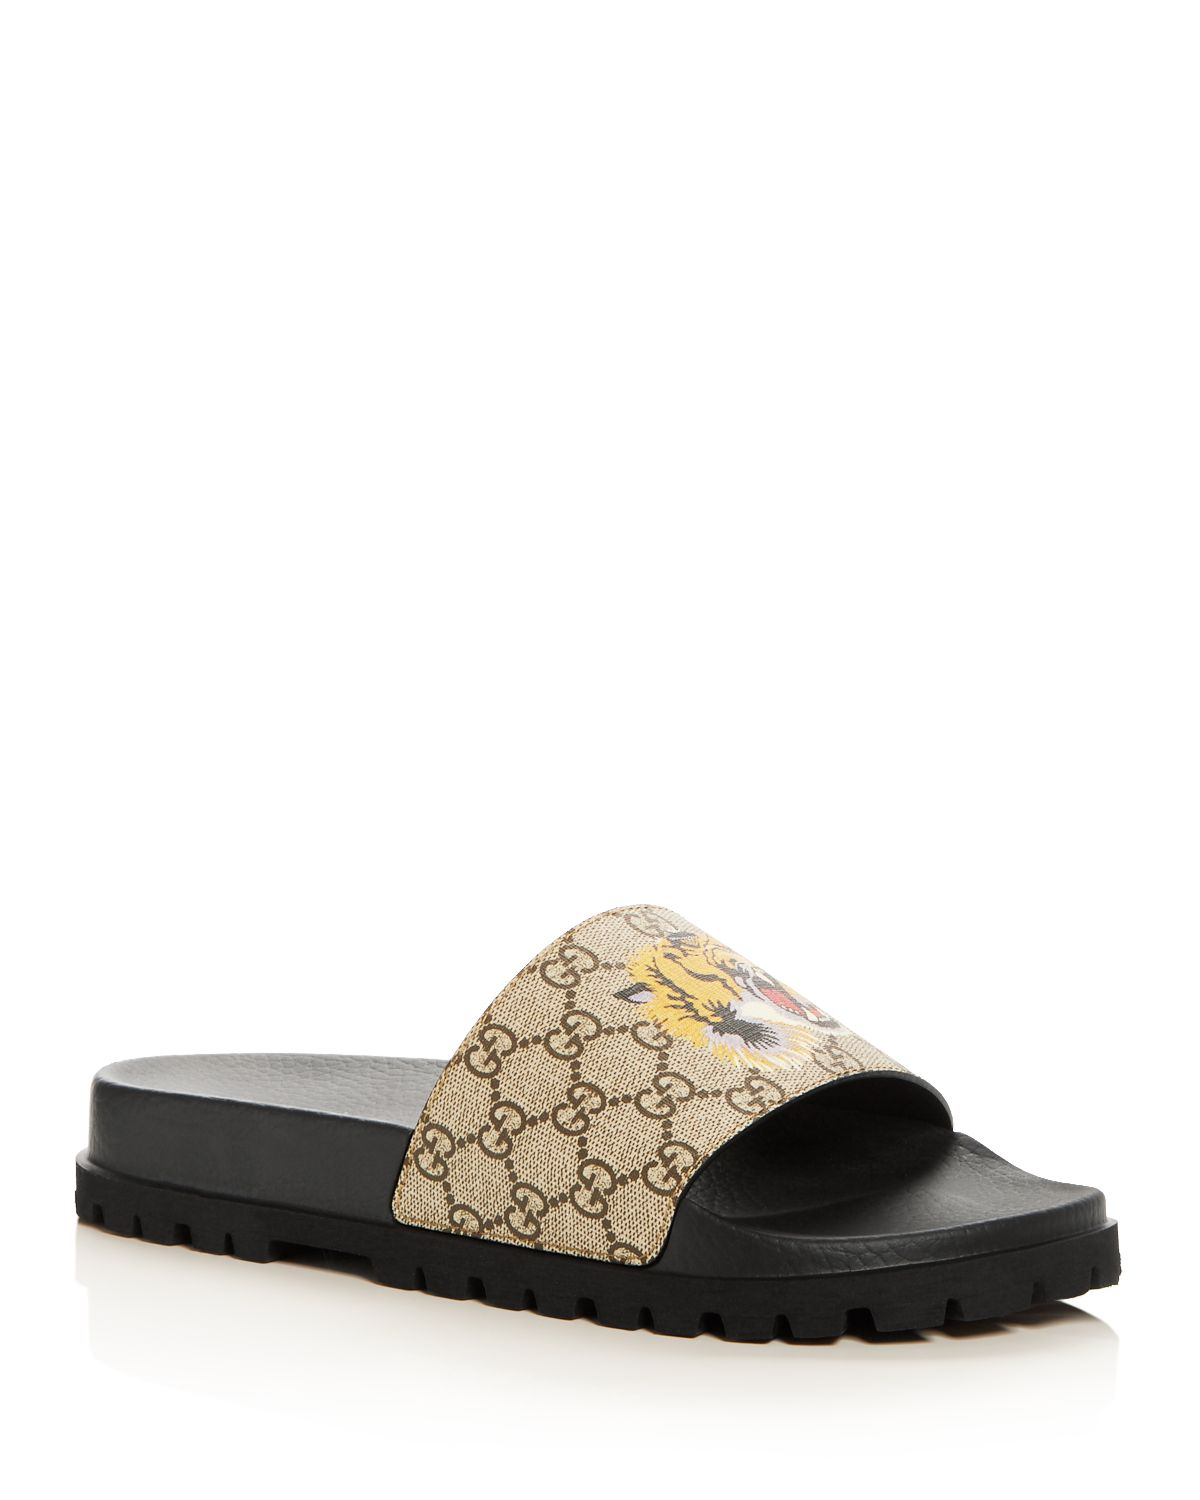 Men's Gg Supreme St. Tiger Pool Slide Sandals by Gucci